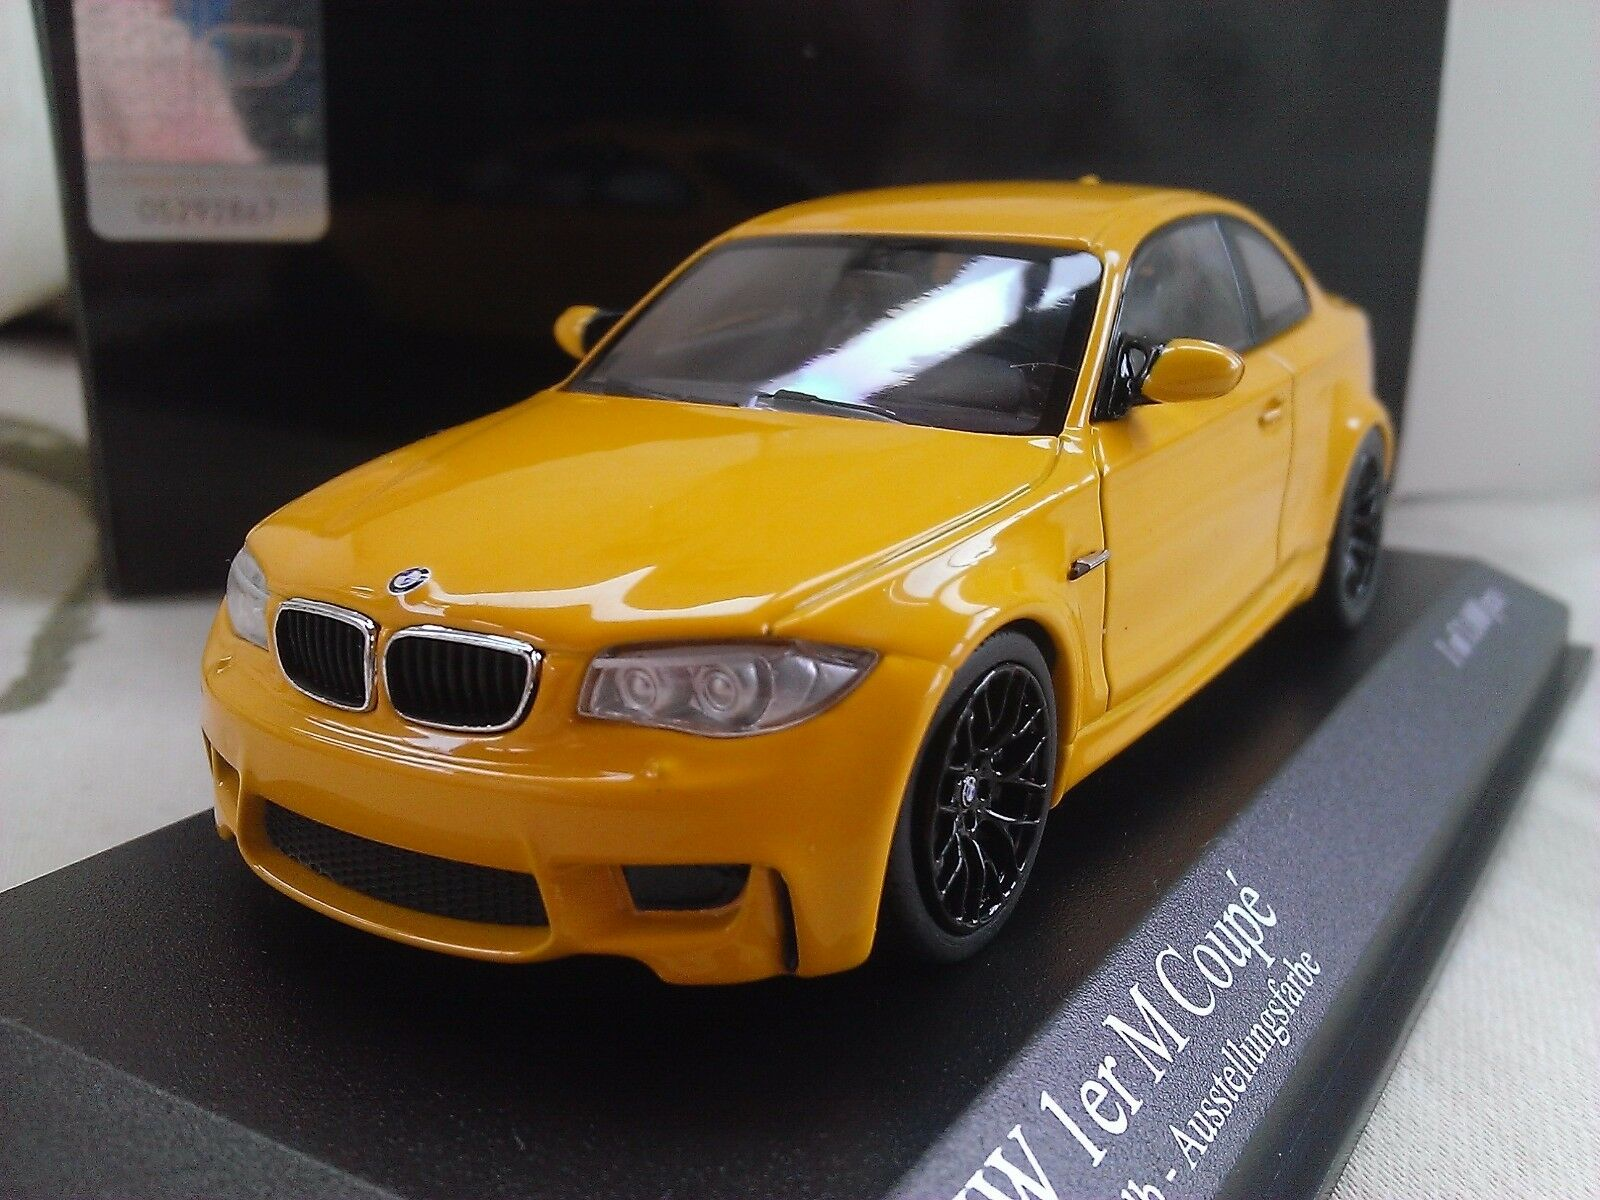 2011 bmw 1er series m coupe yellow diecast model car 1 43 minichamps picclick uk. Black Bedroom Furniture Sets. Home Design Ideas